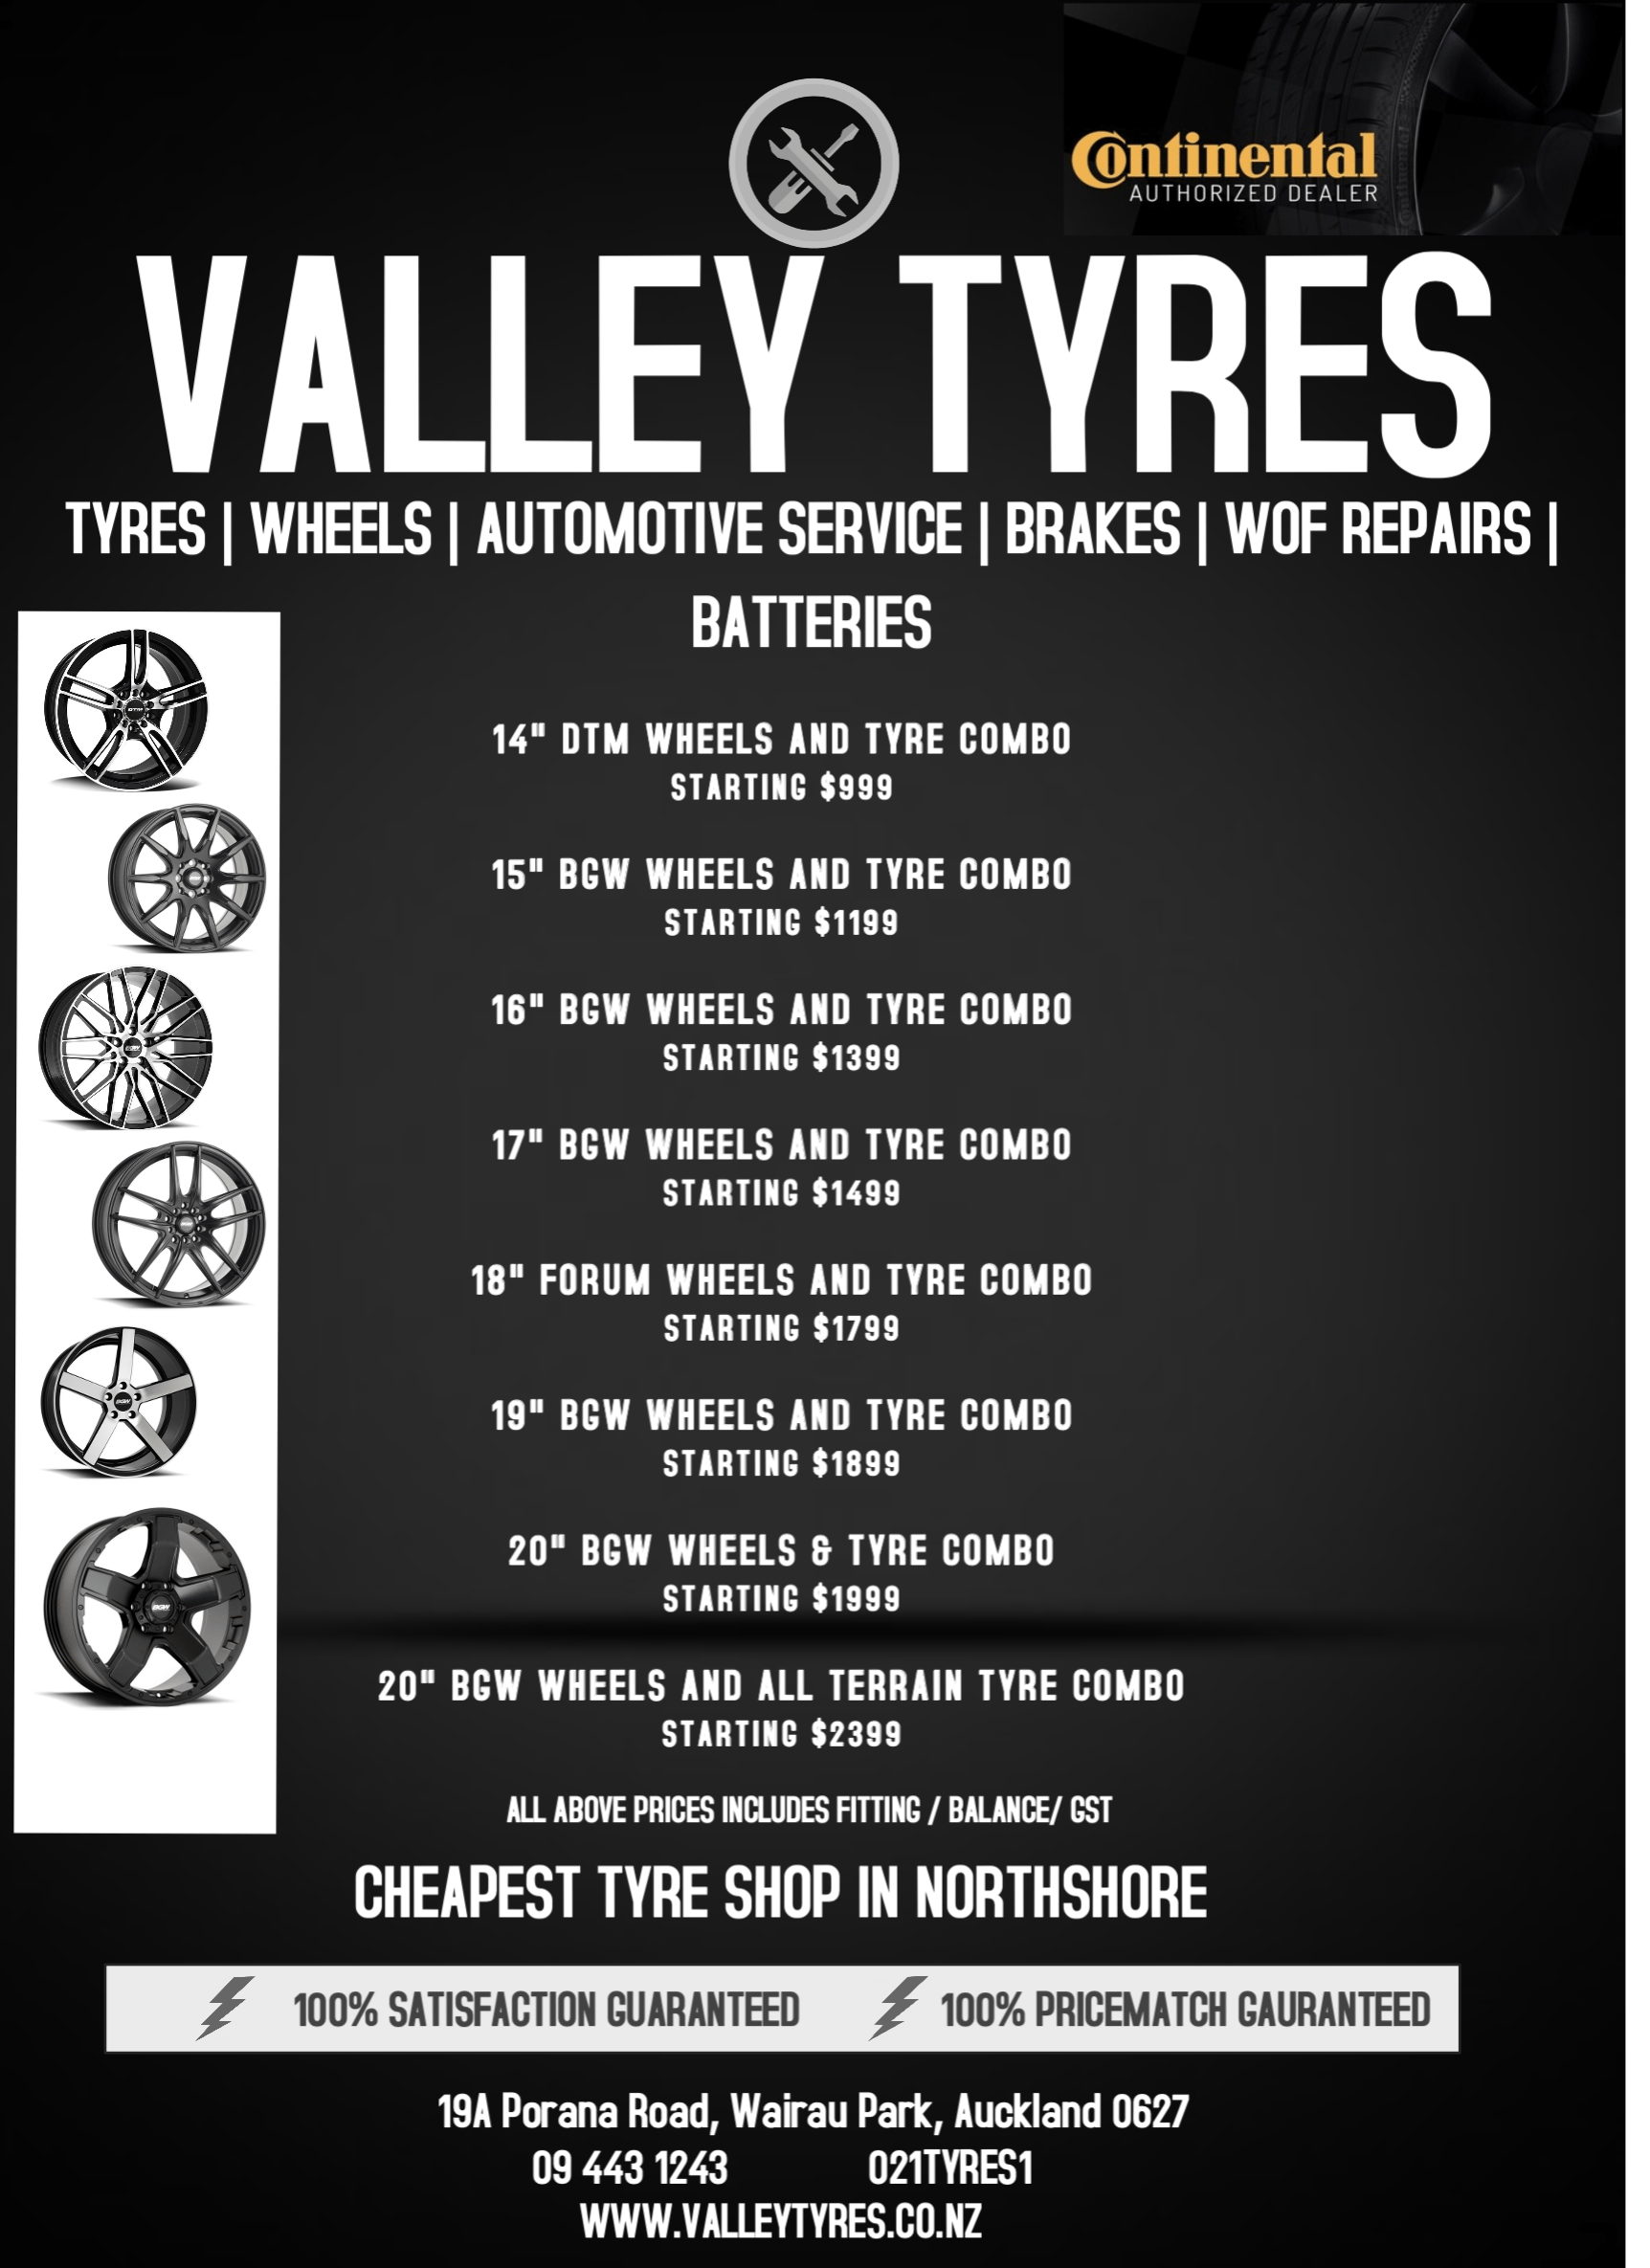 JANUARY SPECIAL OF THE MONTH TYRE AND WHEEL COMBO